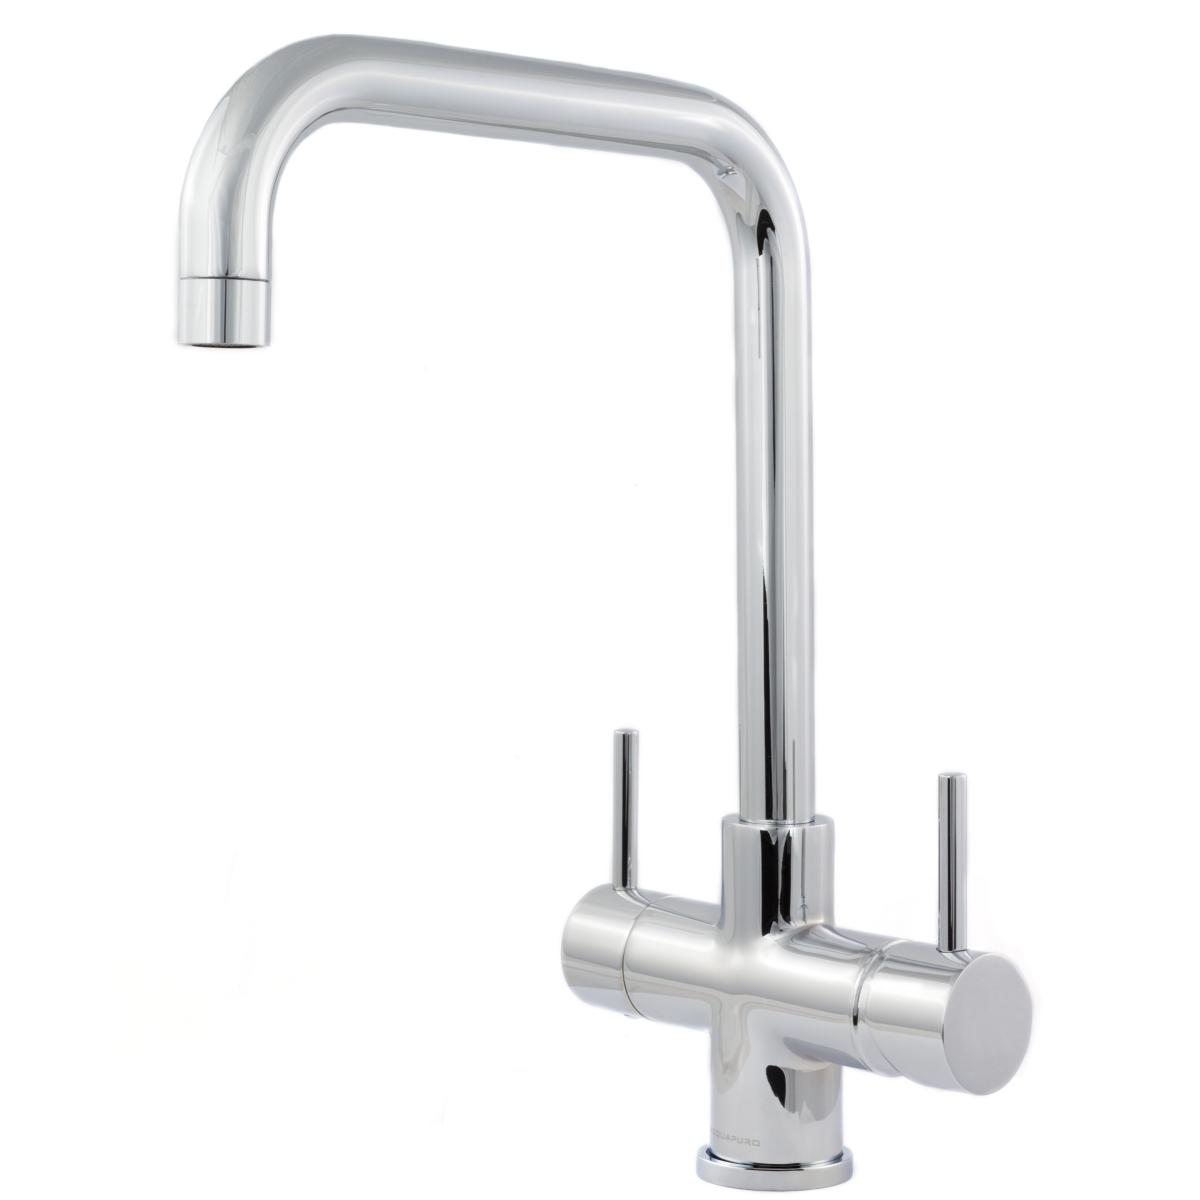 Monza 2 Lever 3 Way Kitchen Filter Tap Chrome